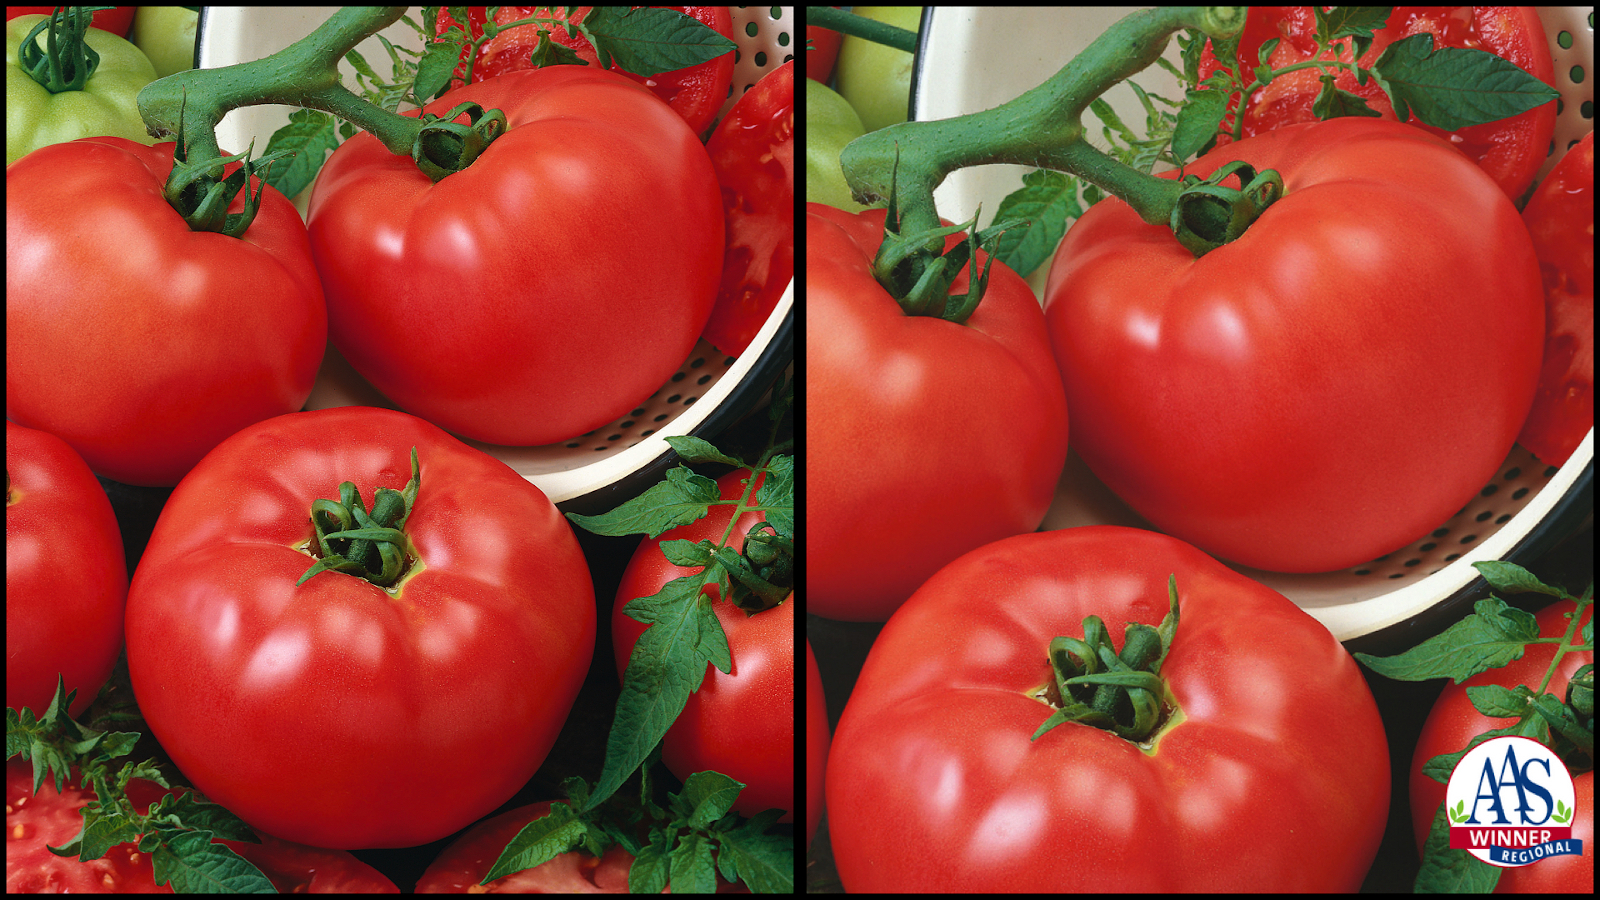 Tasty, juicy tomatoes right from your porch